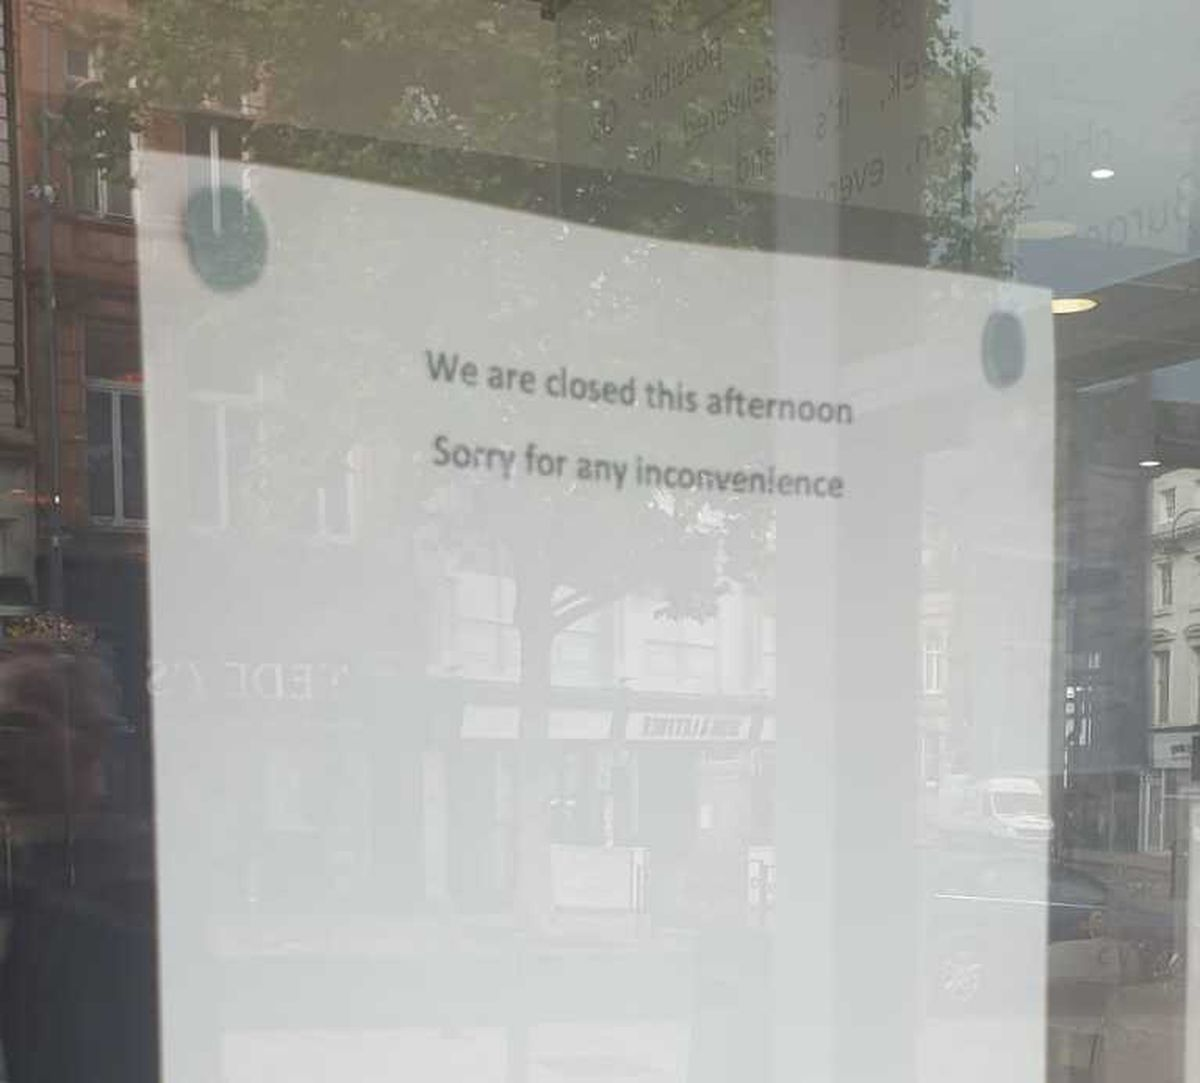 A notice telling customers that KFC was closed for the afternoon